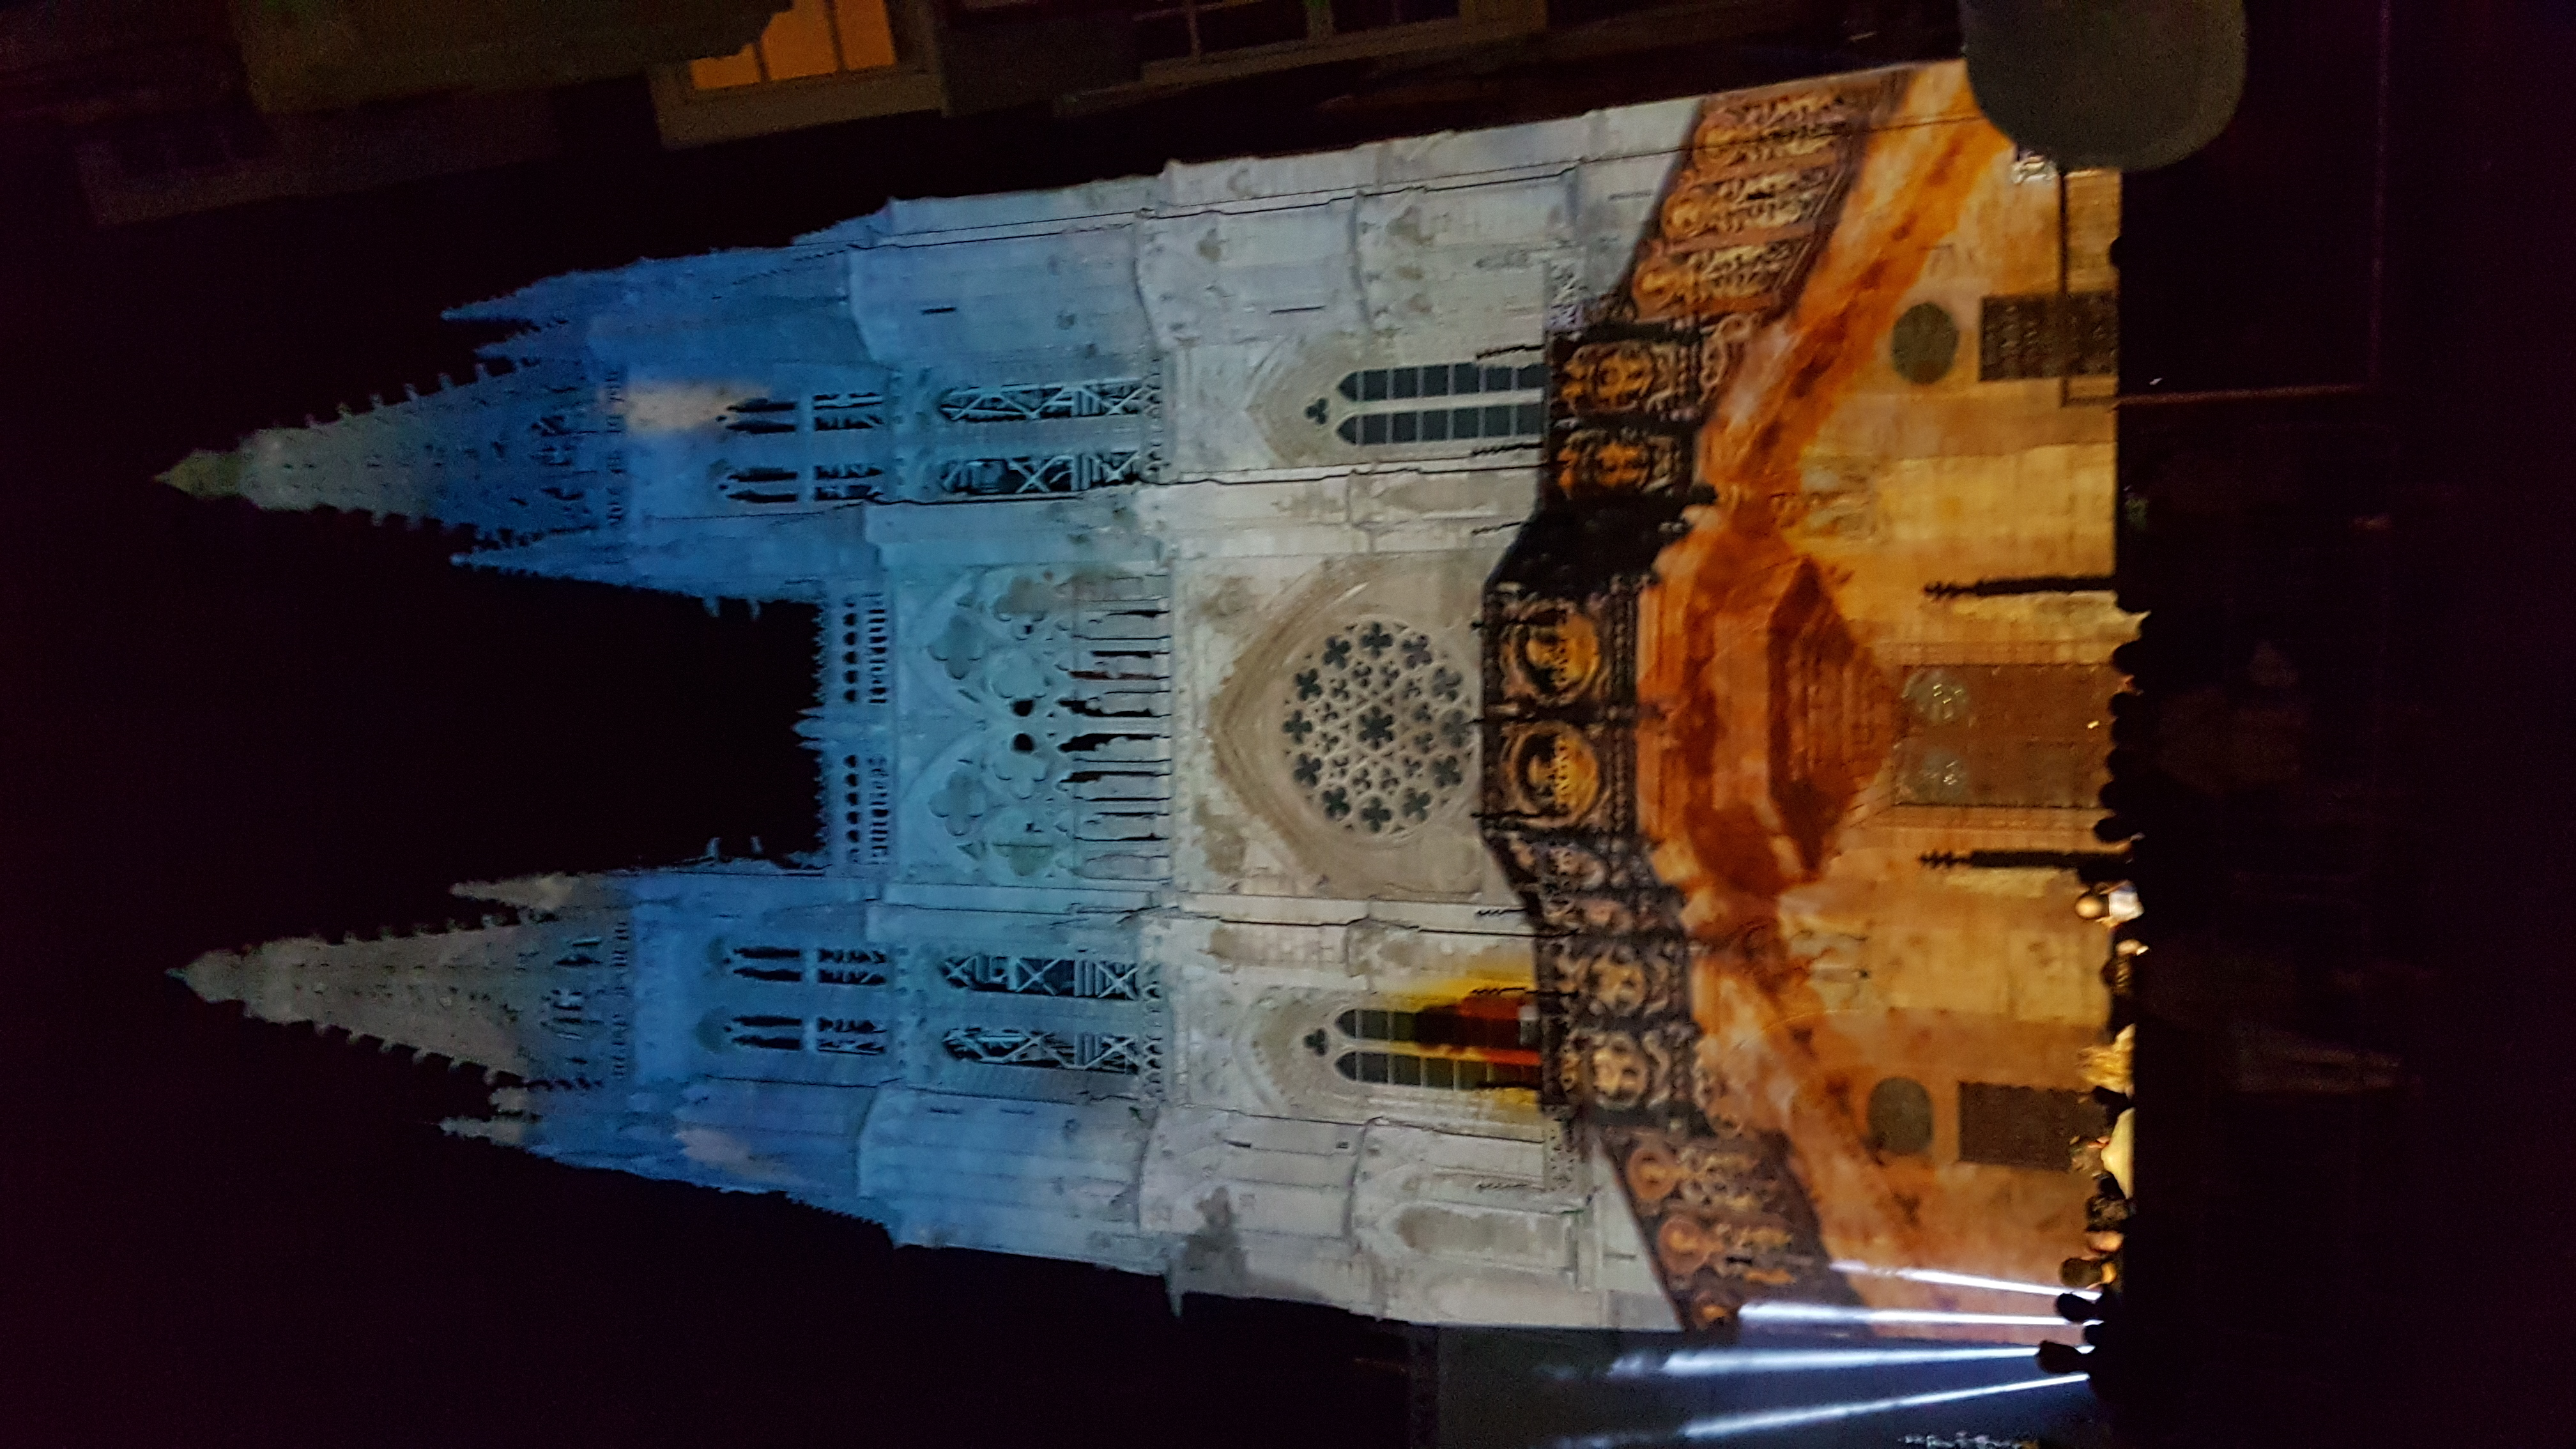 Video Mapping CateVidedral de Burgos